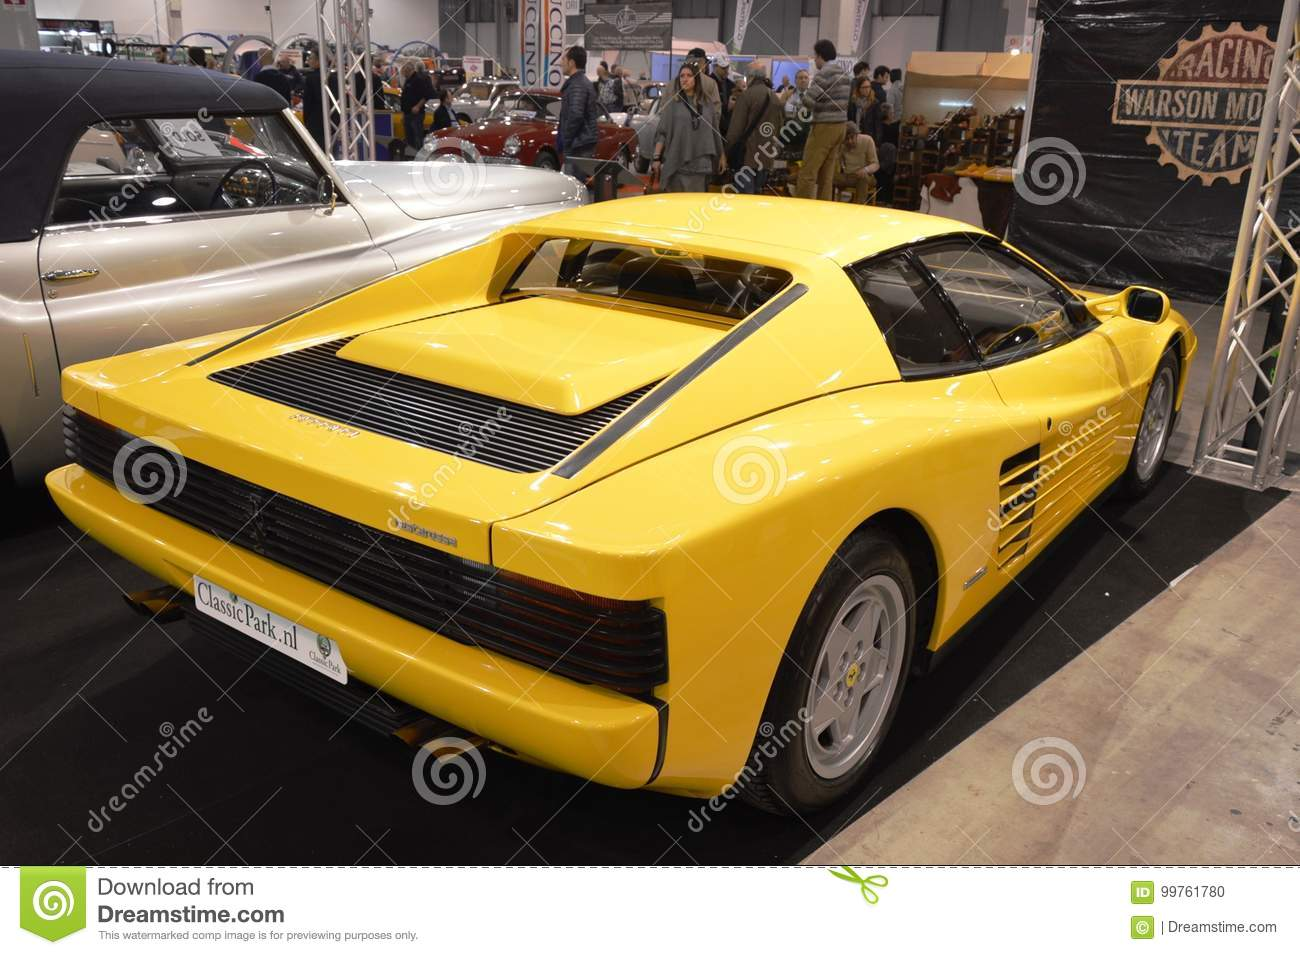 Ferrari Testarossa Color Yellow Year 1991 At Vintage Car Exposition In Padova 2015 Editorial Image Image Of Show Elegant 99761780